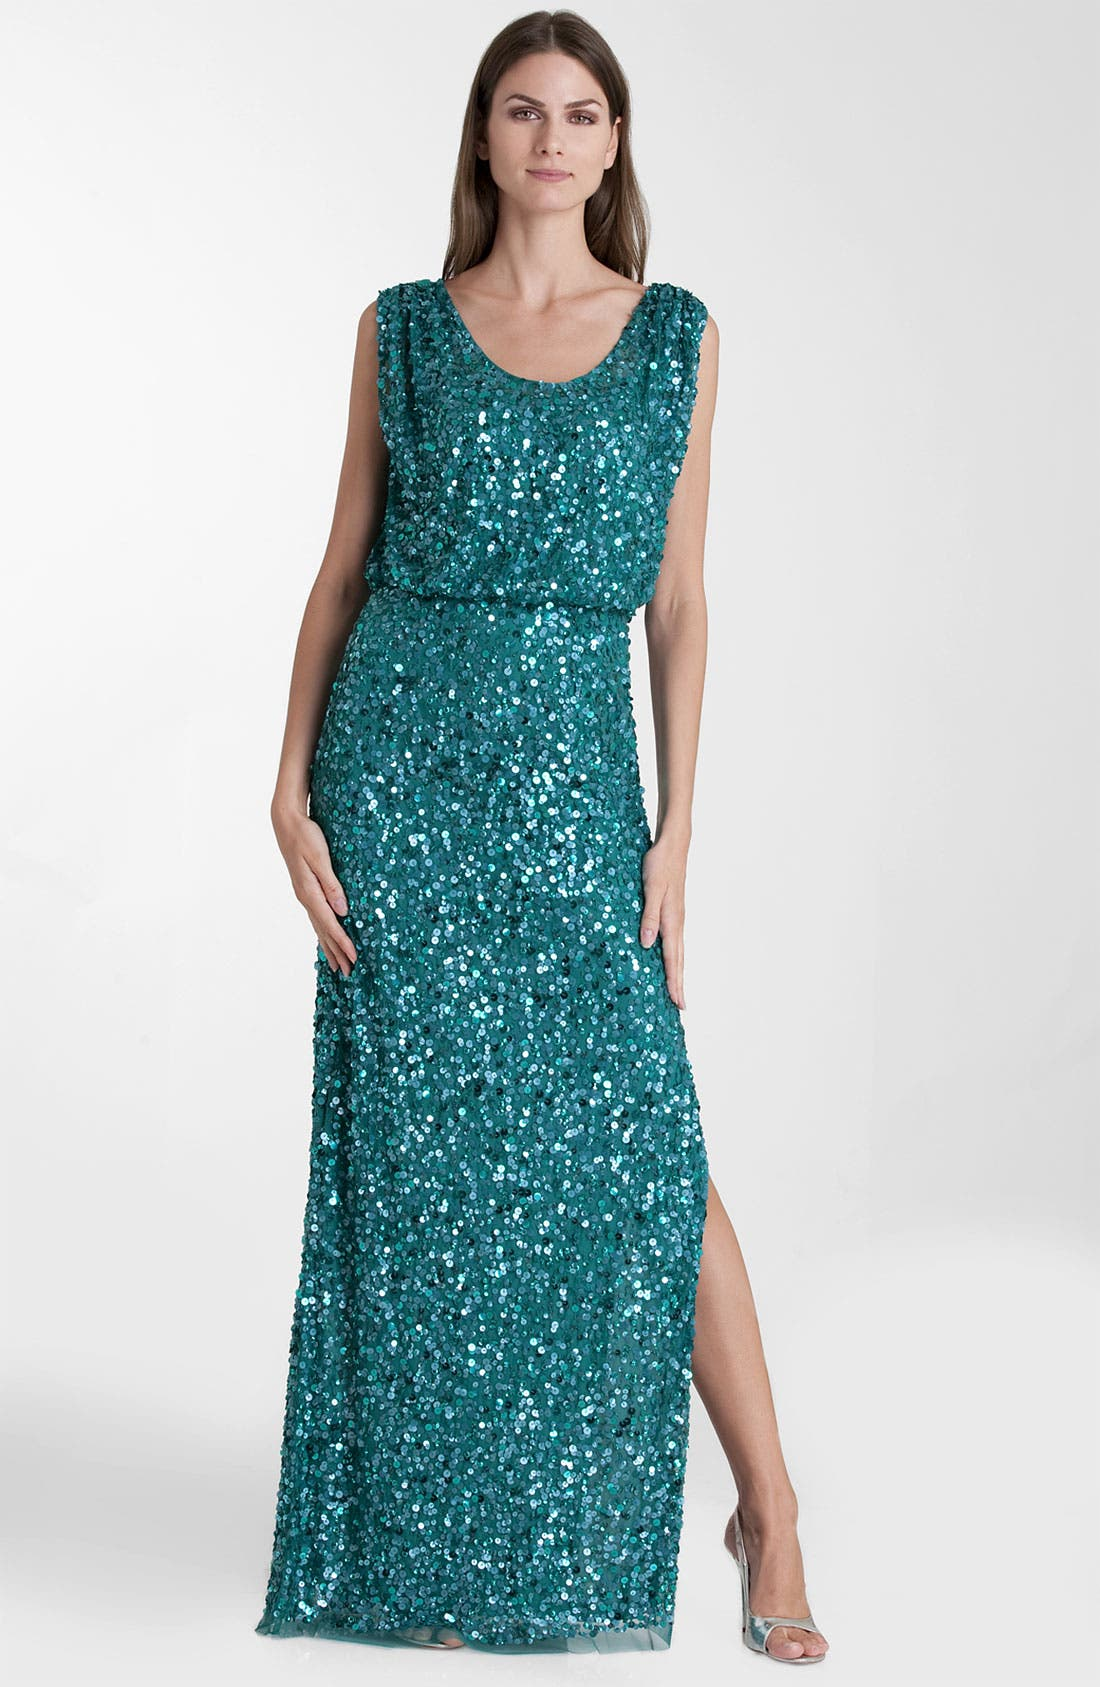 Alternate Image 1 Selected - JS Collections Blouson Bodice Sequin Mesh Gown (Petite)